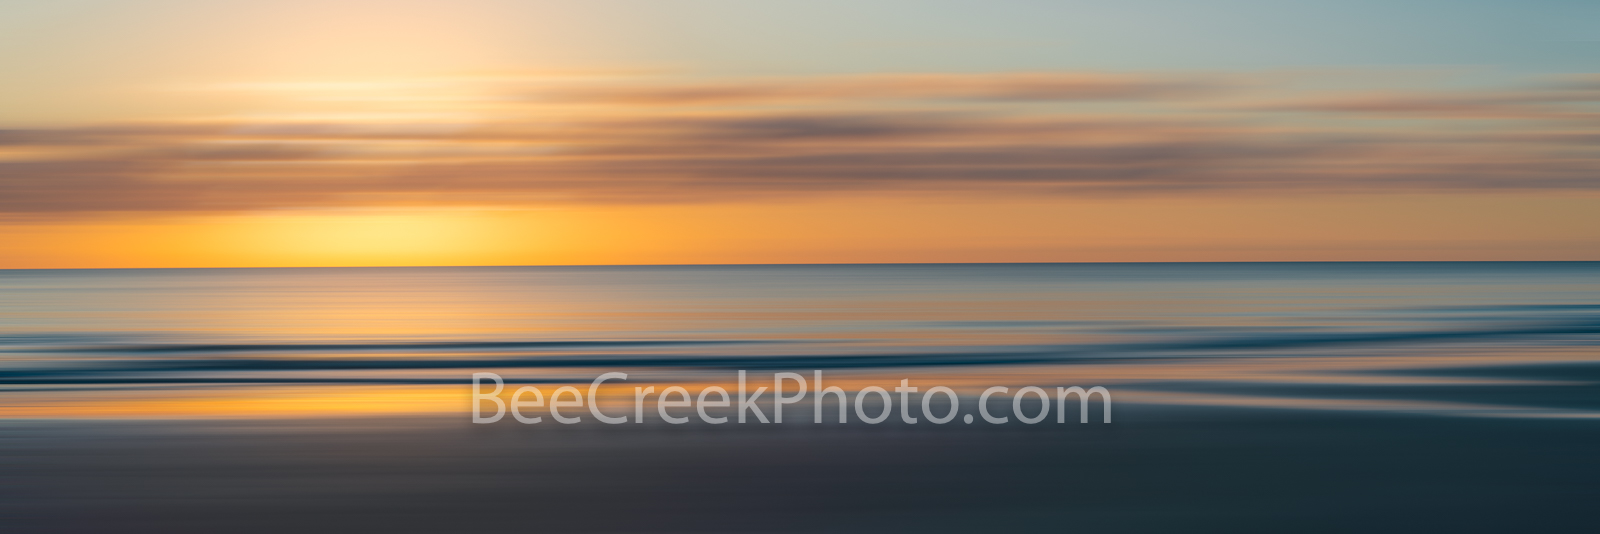 Atlantic Serenity Sunrise Pano - A stunning abstract over the Atlantic ocean at sunrise as the sky light up with a magical golden...